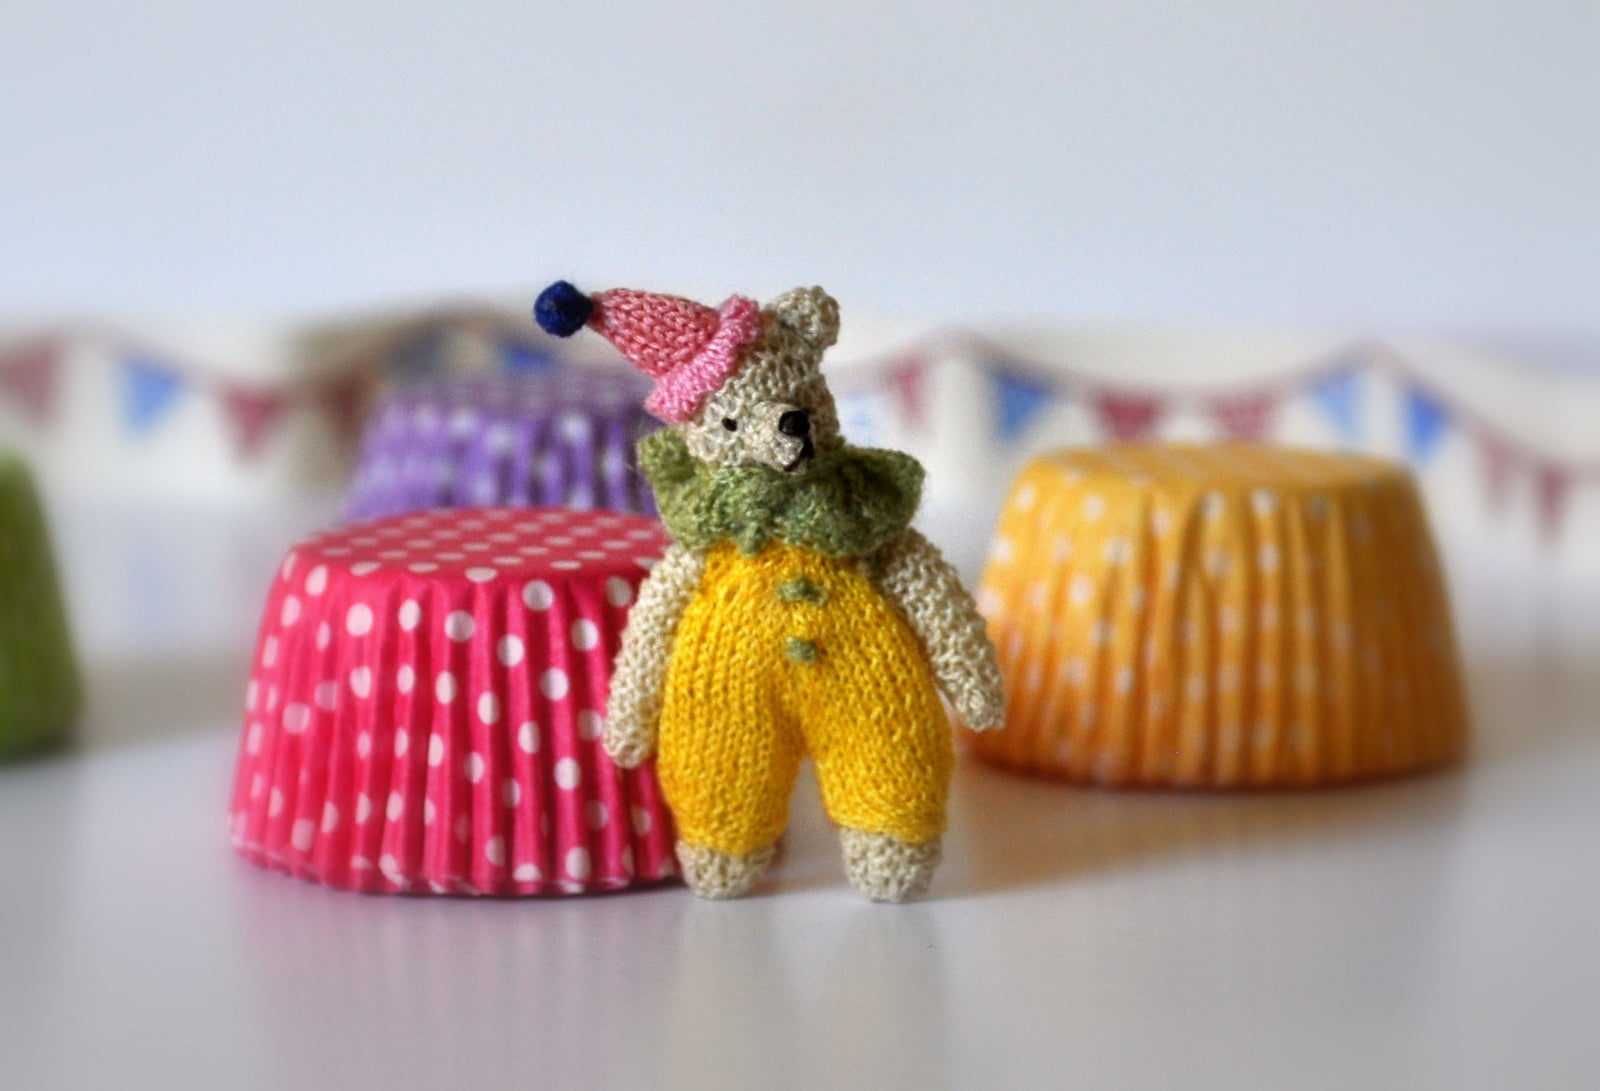 Teddy Clown Soft Toy #2 by Jenny Tomkins